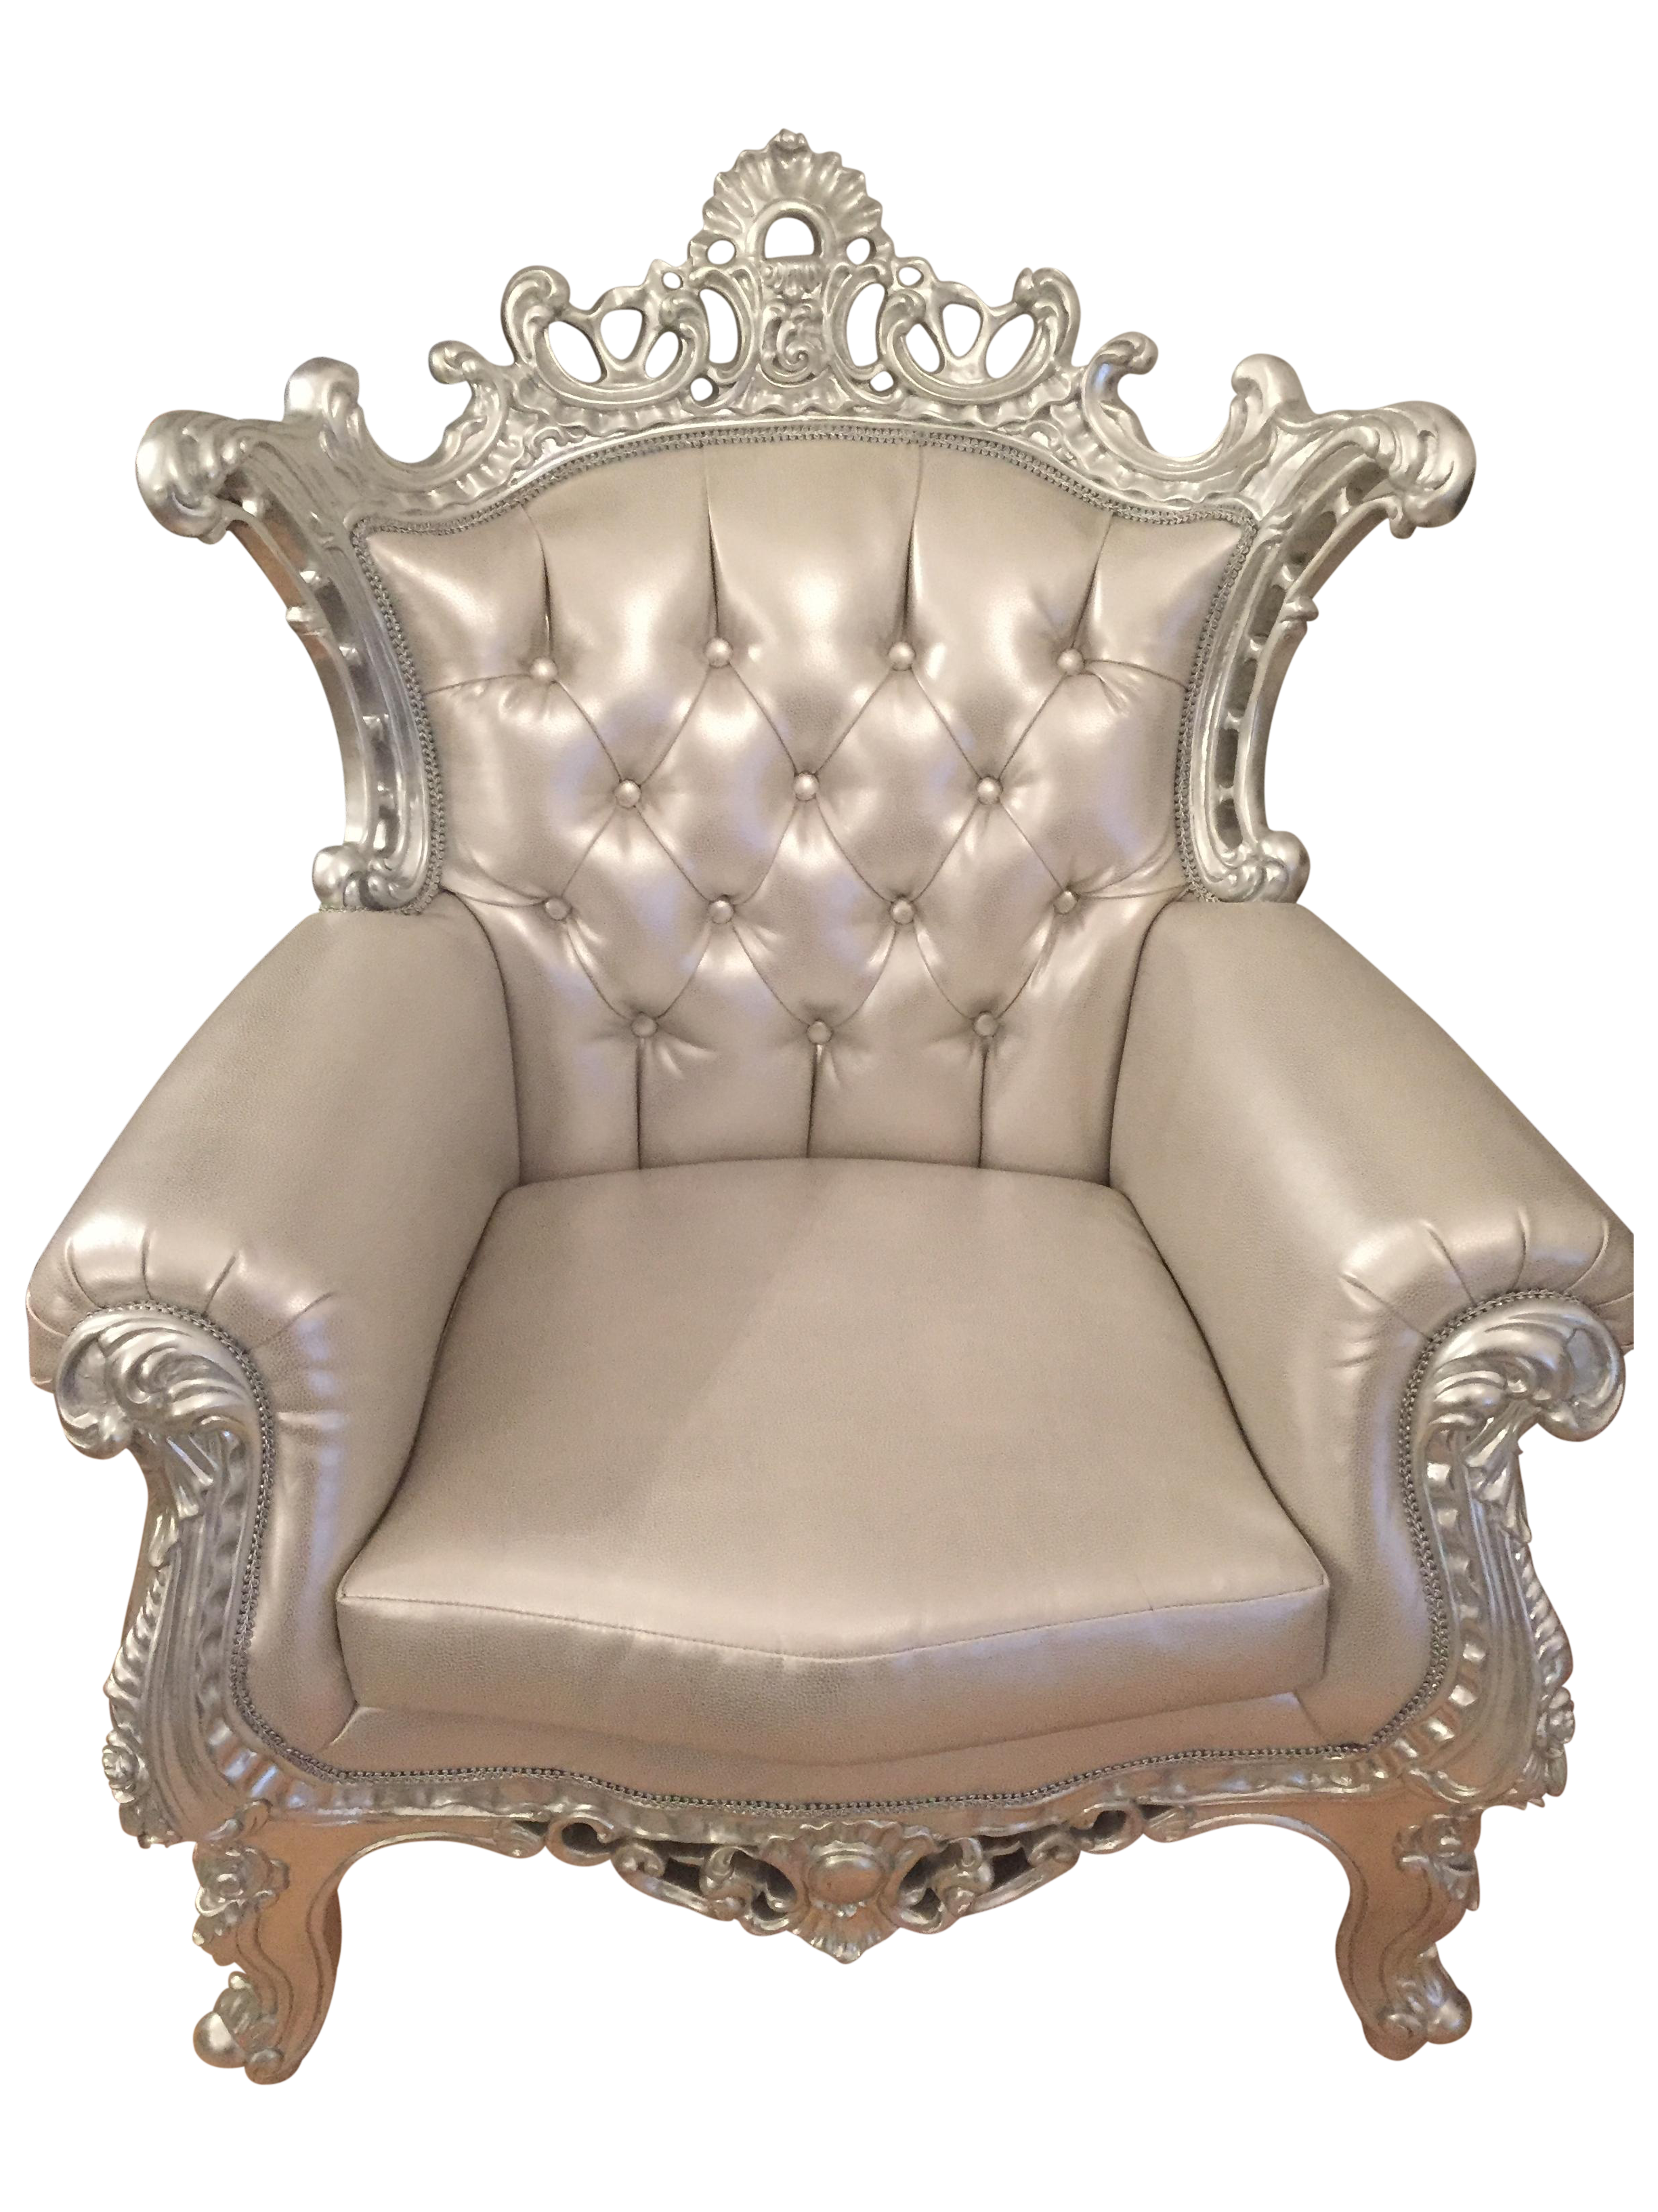 Baroque Style Silver Tufted Accent Throne Chair Chairish